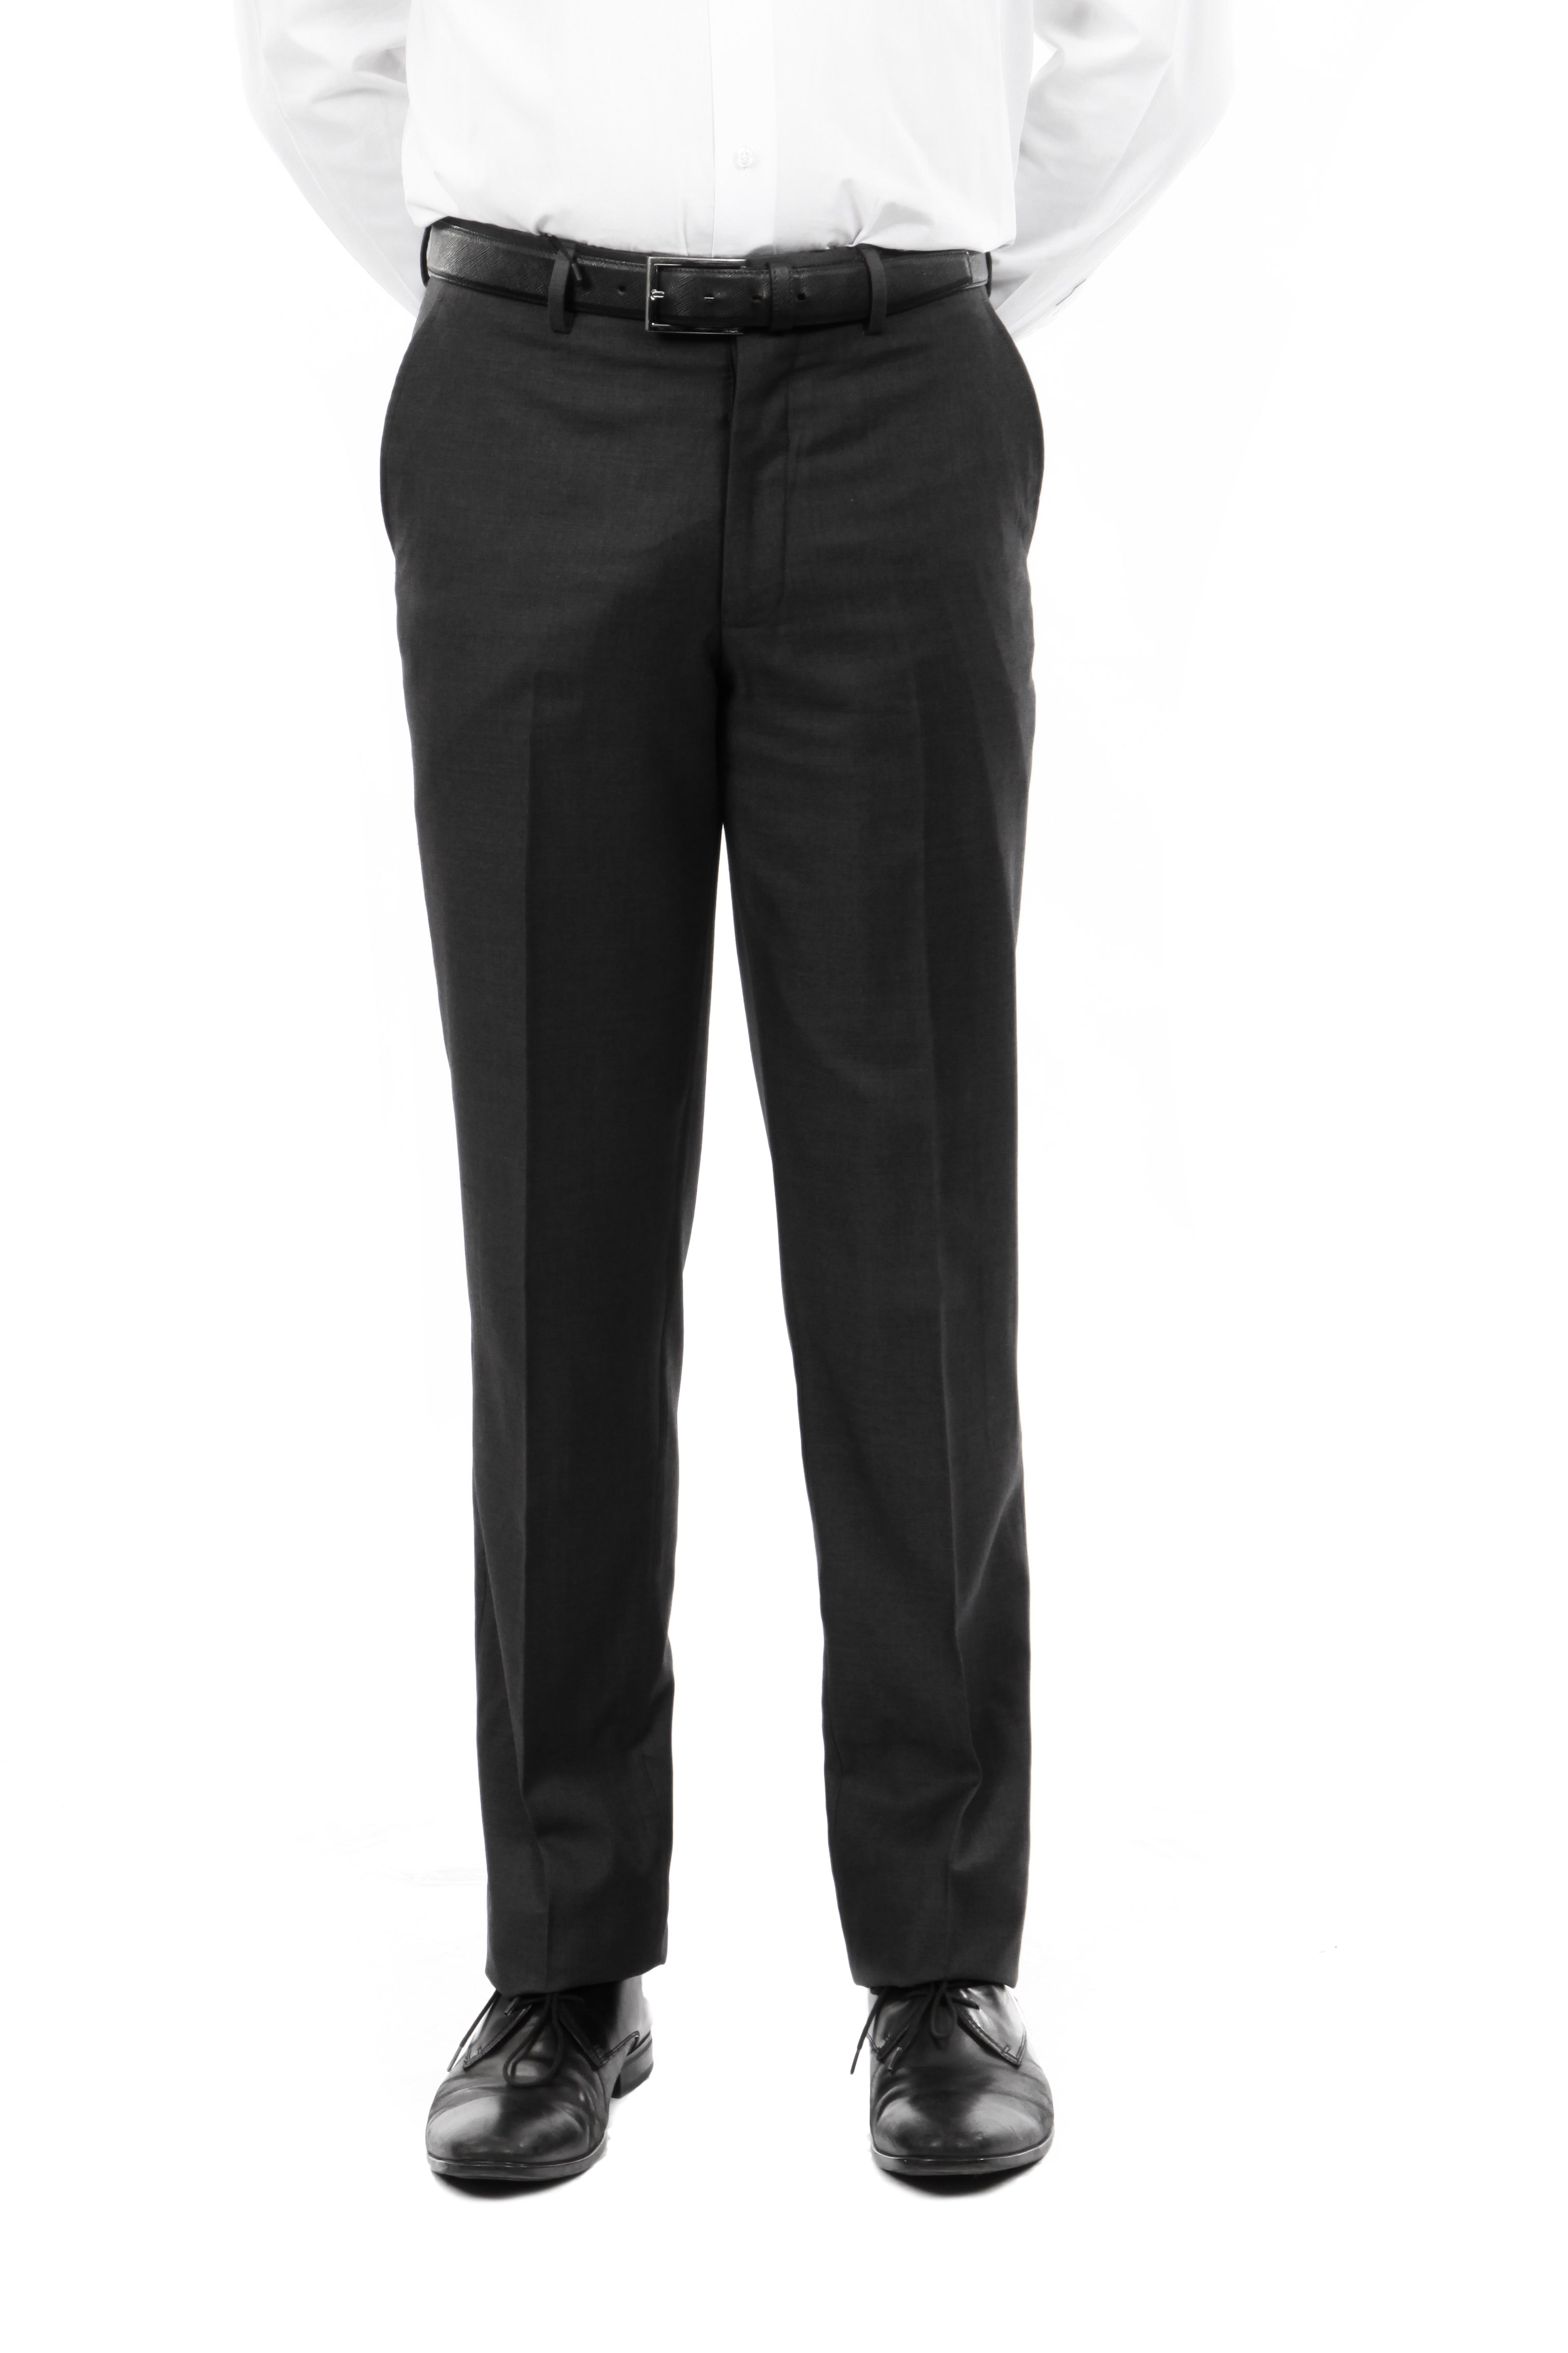 Demantie Black Performance Stretch Wool Dress Pants For Men